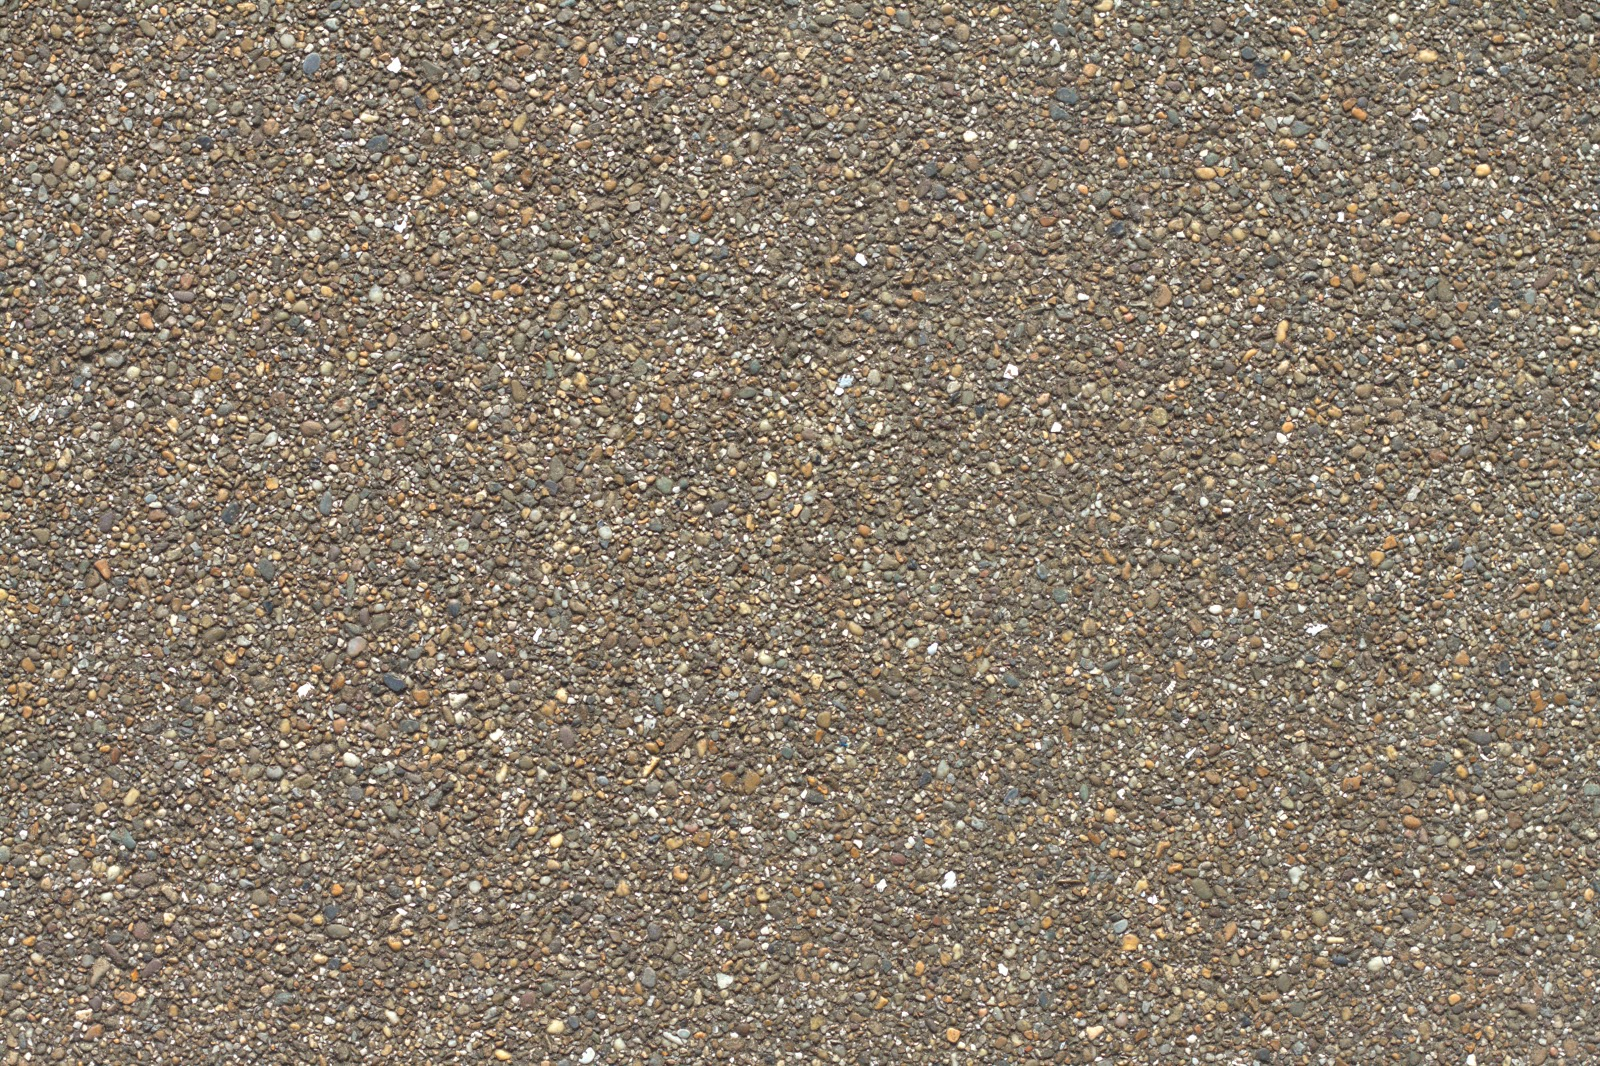 Pebblestone small ground texture 4770x3178